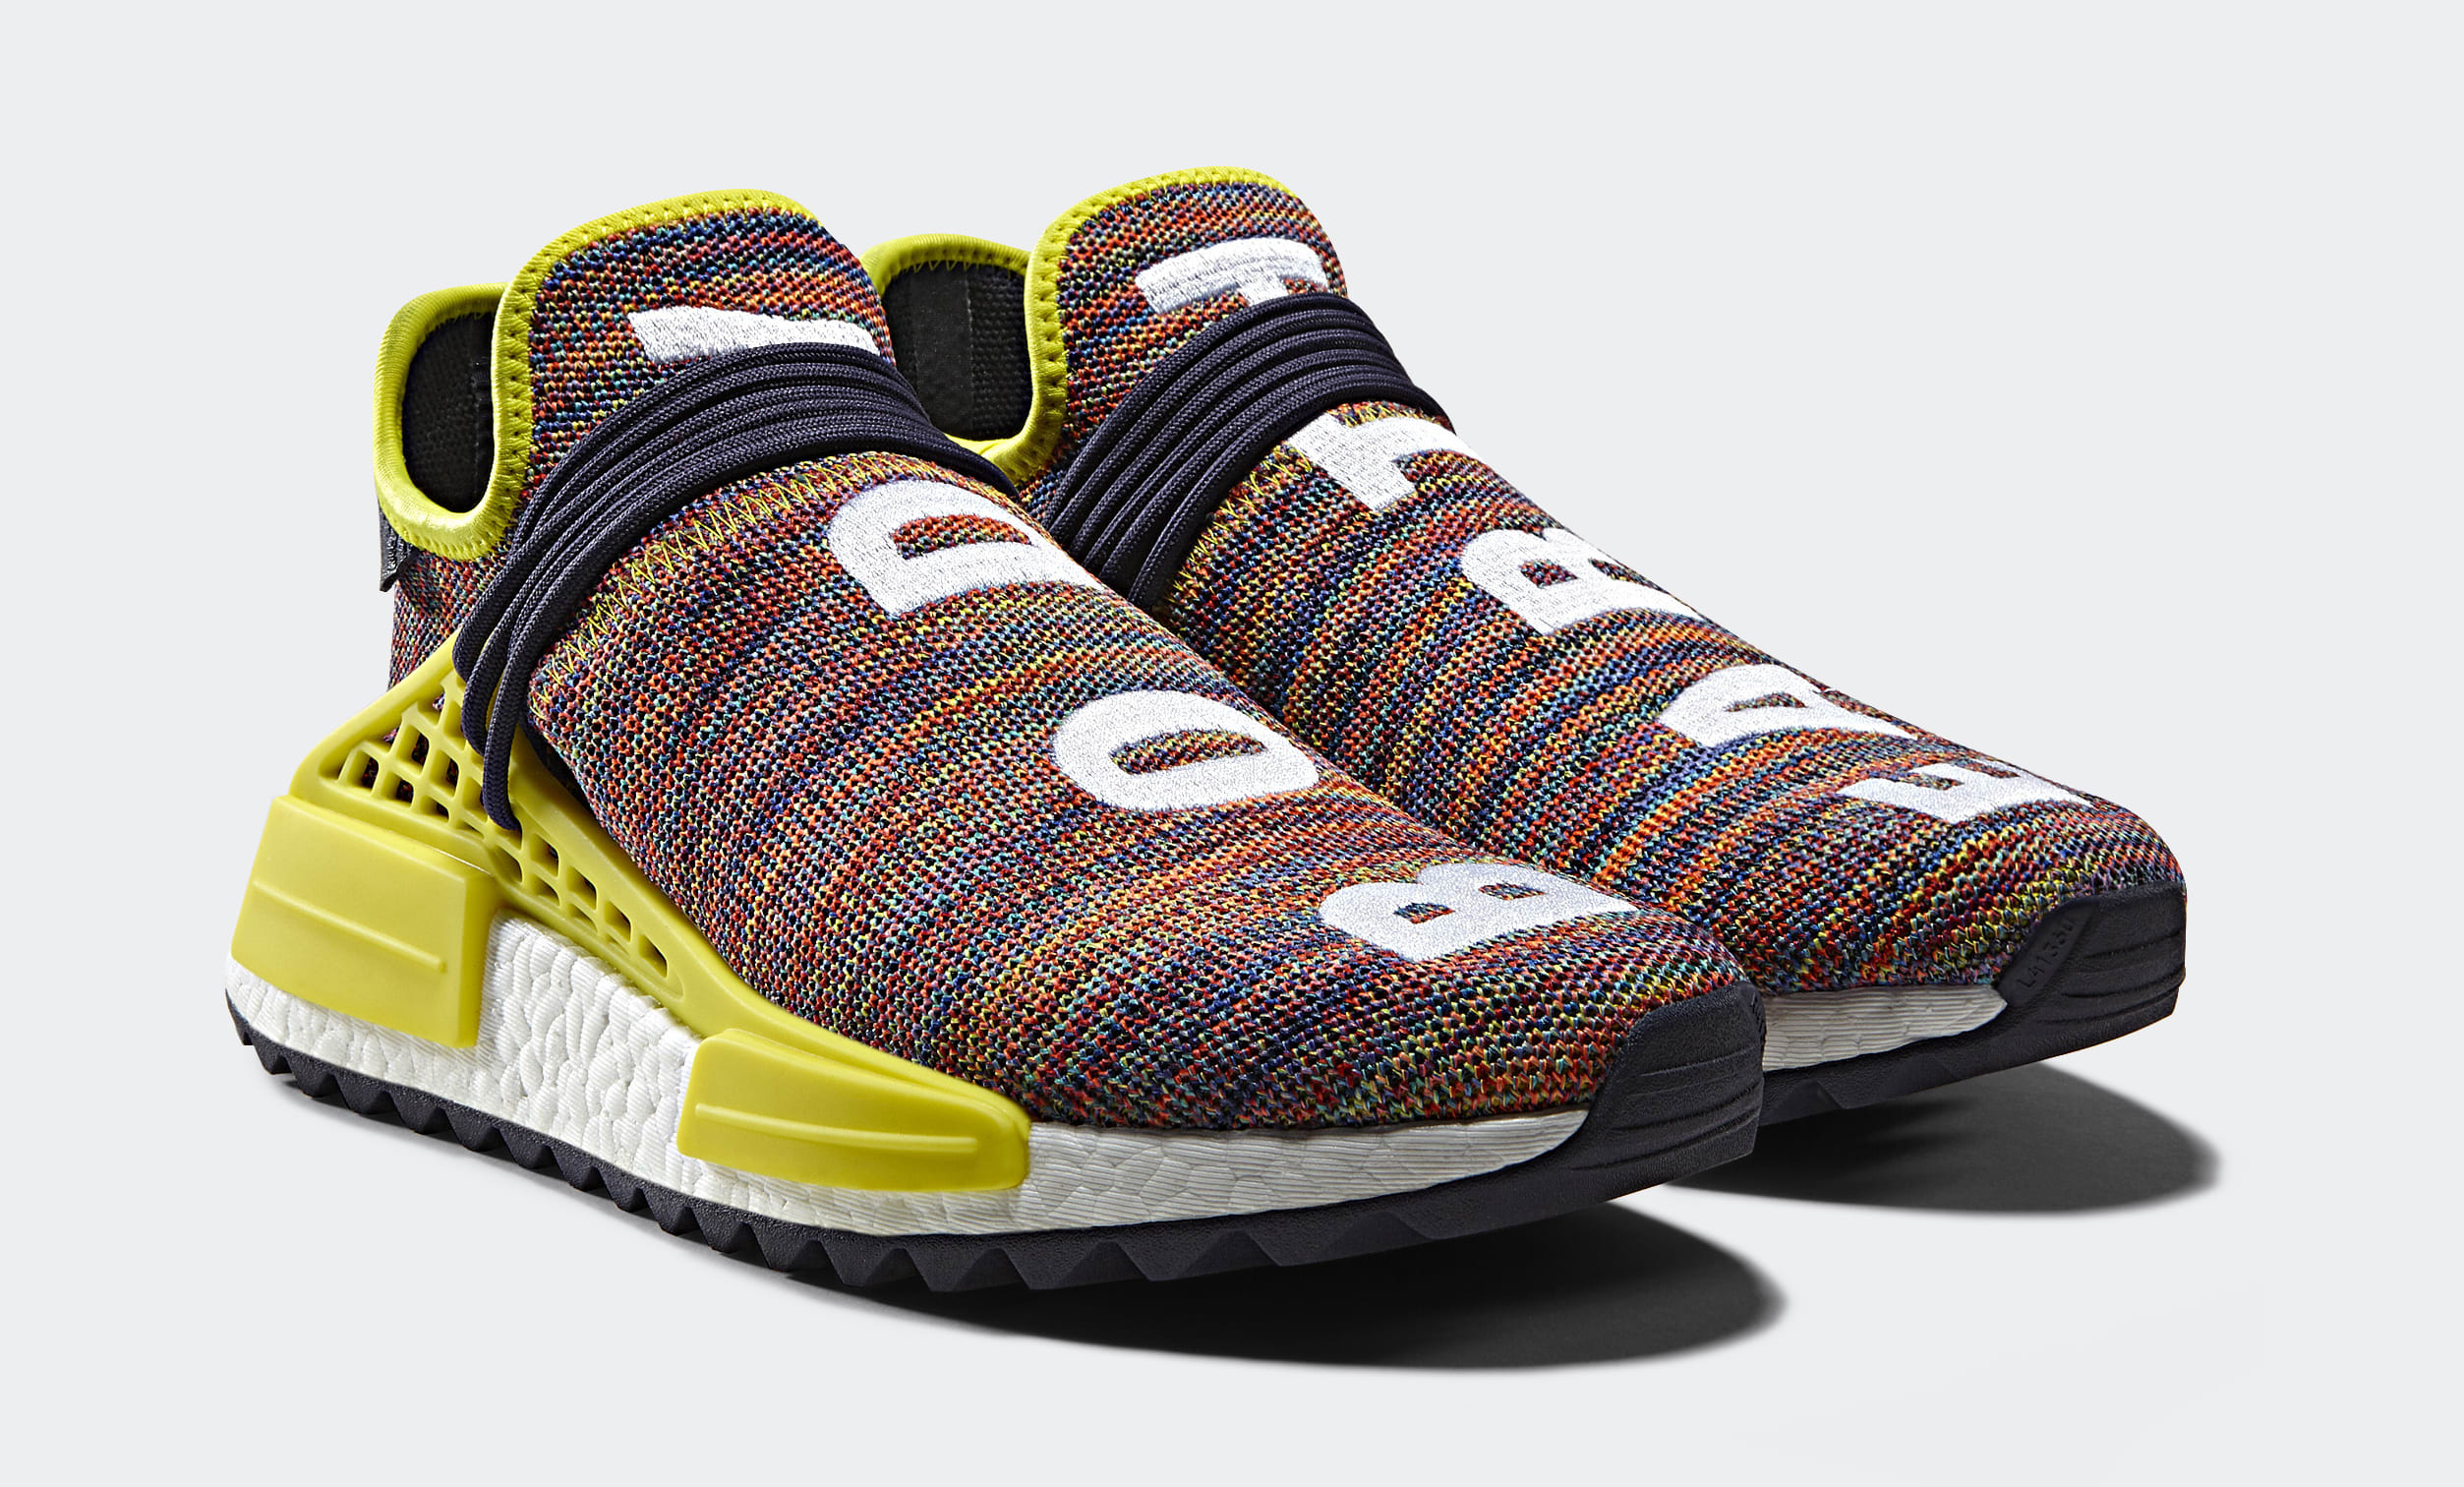 51bb64537ee7f Adidas X Pharrell Williams NMD Human Race Originals Trail Green